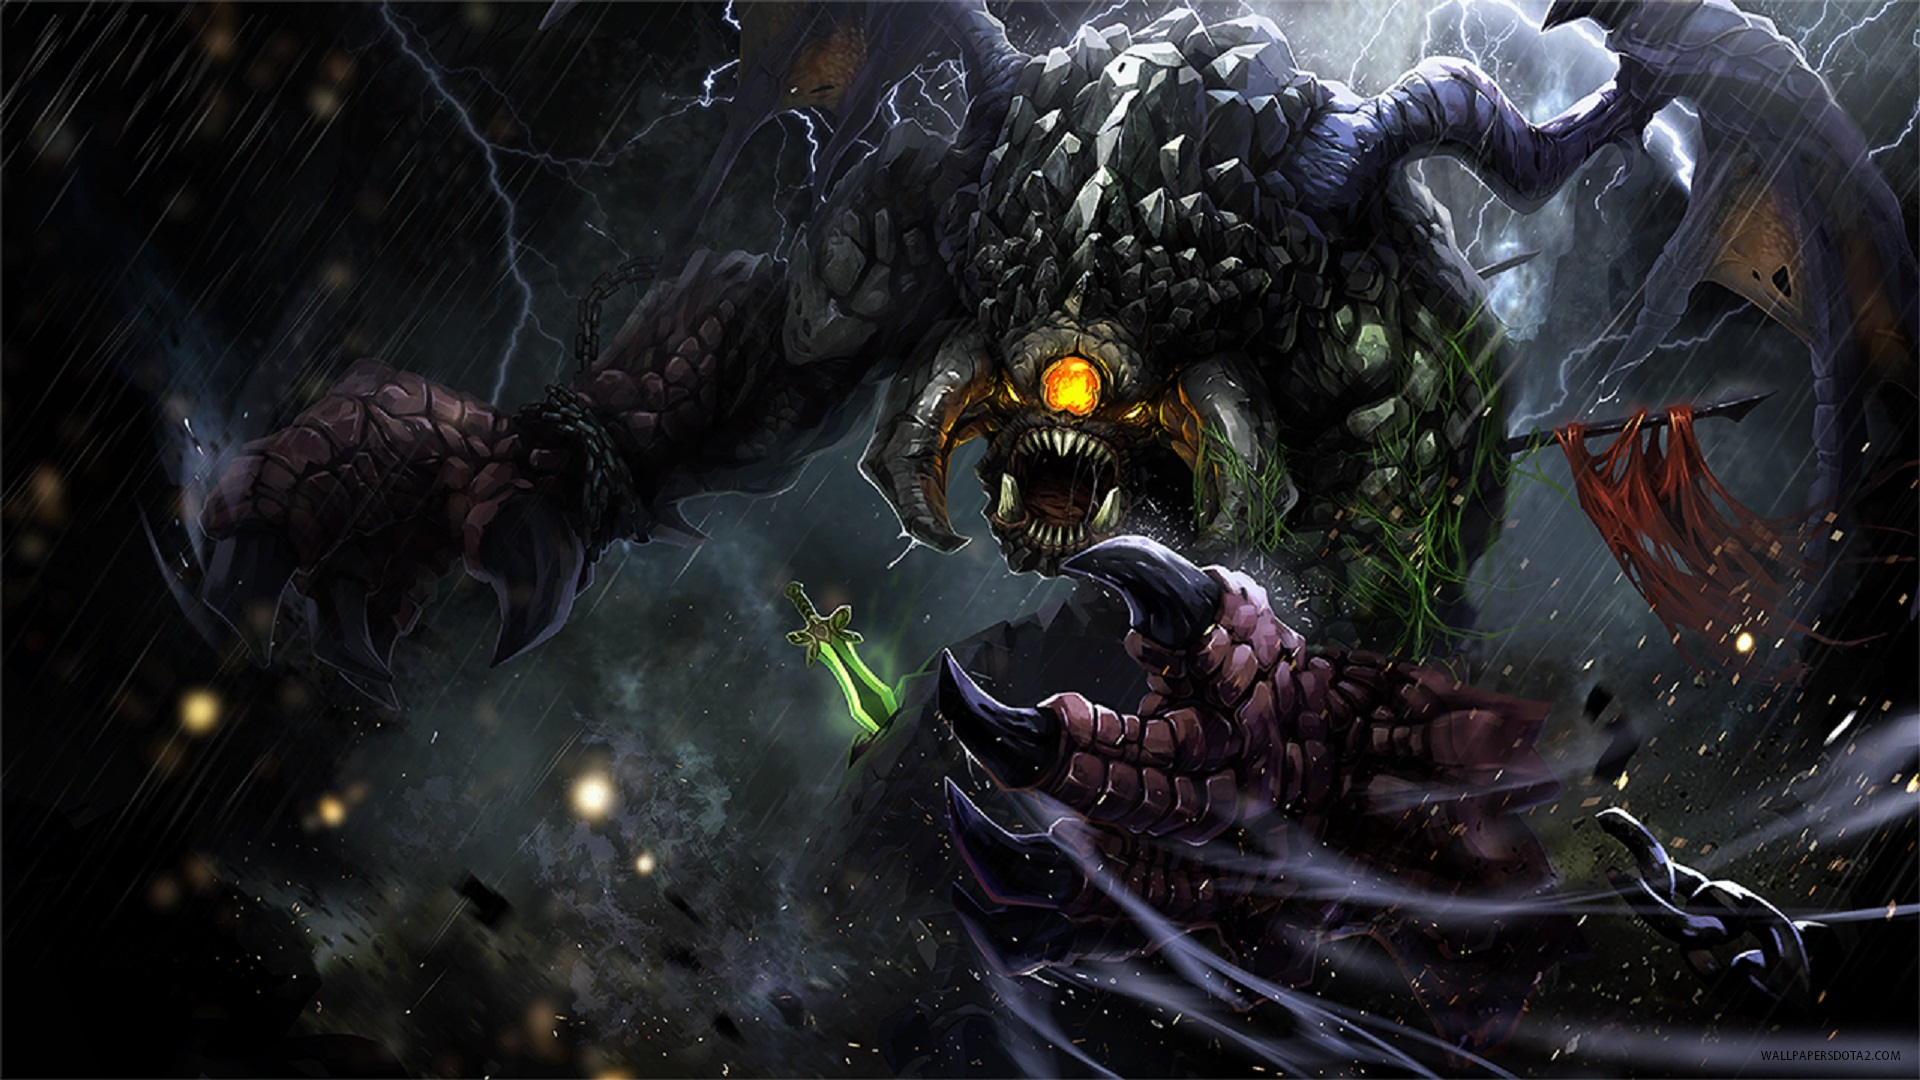 Roshan Dota 2 wallpaper in desktop